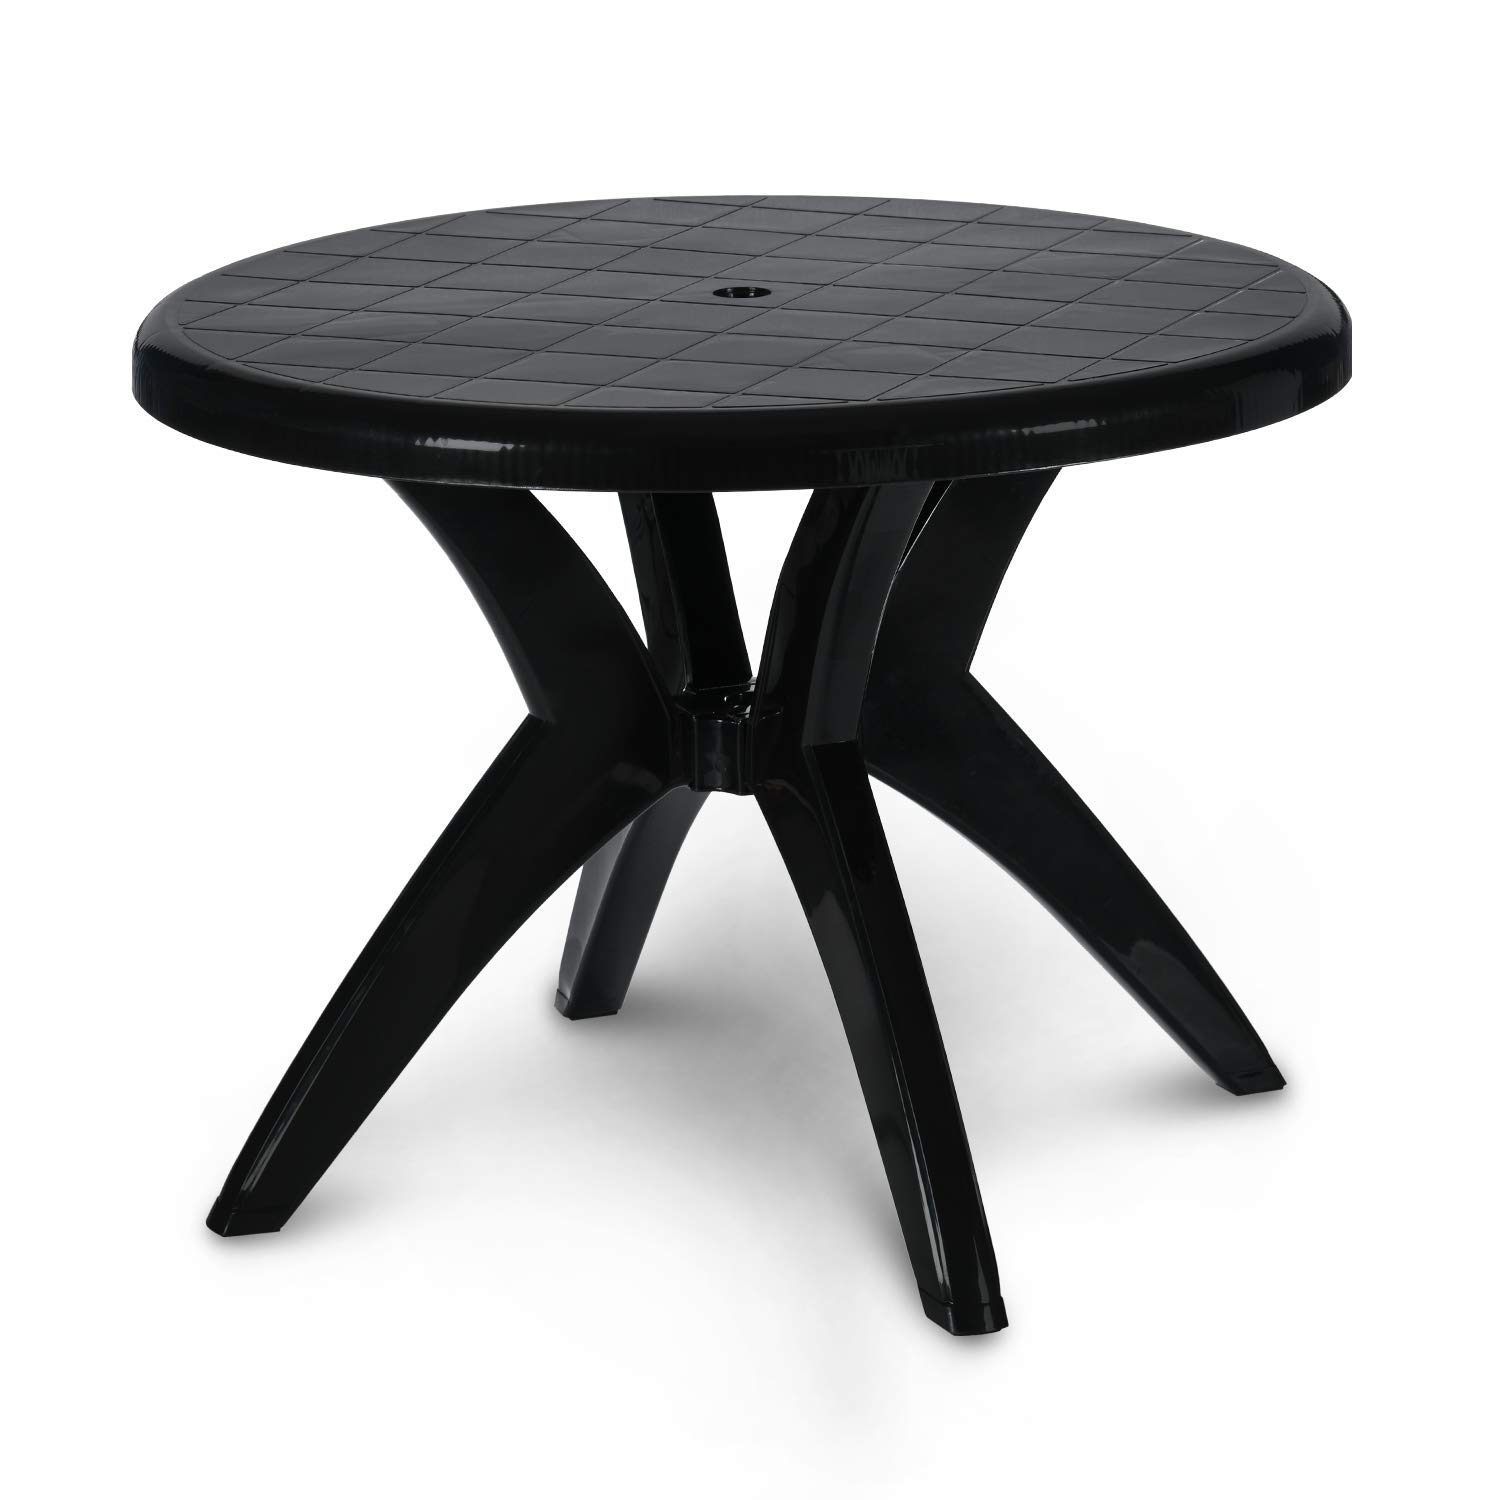 Supreme Marina 4 Seater Plastic Round Dining Table for Home (Black)